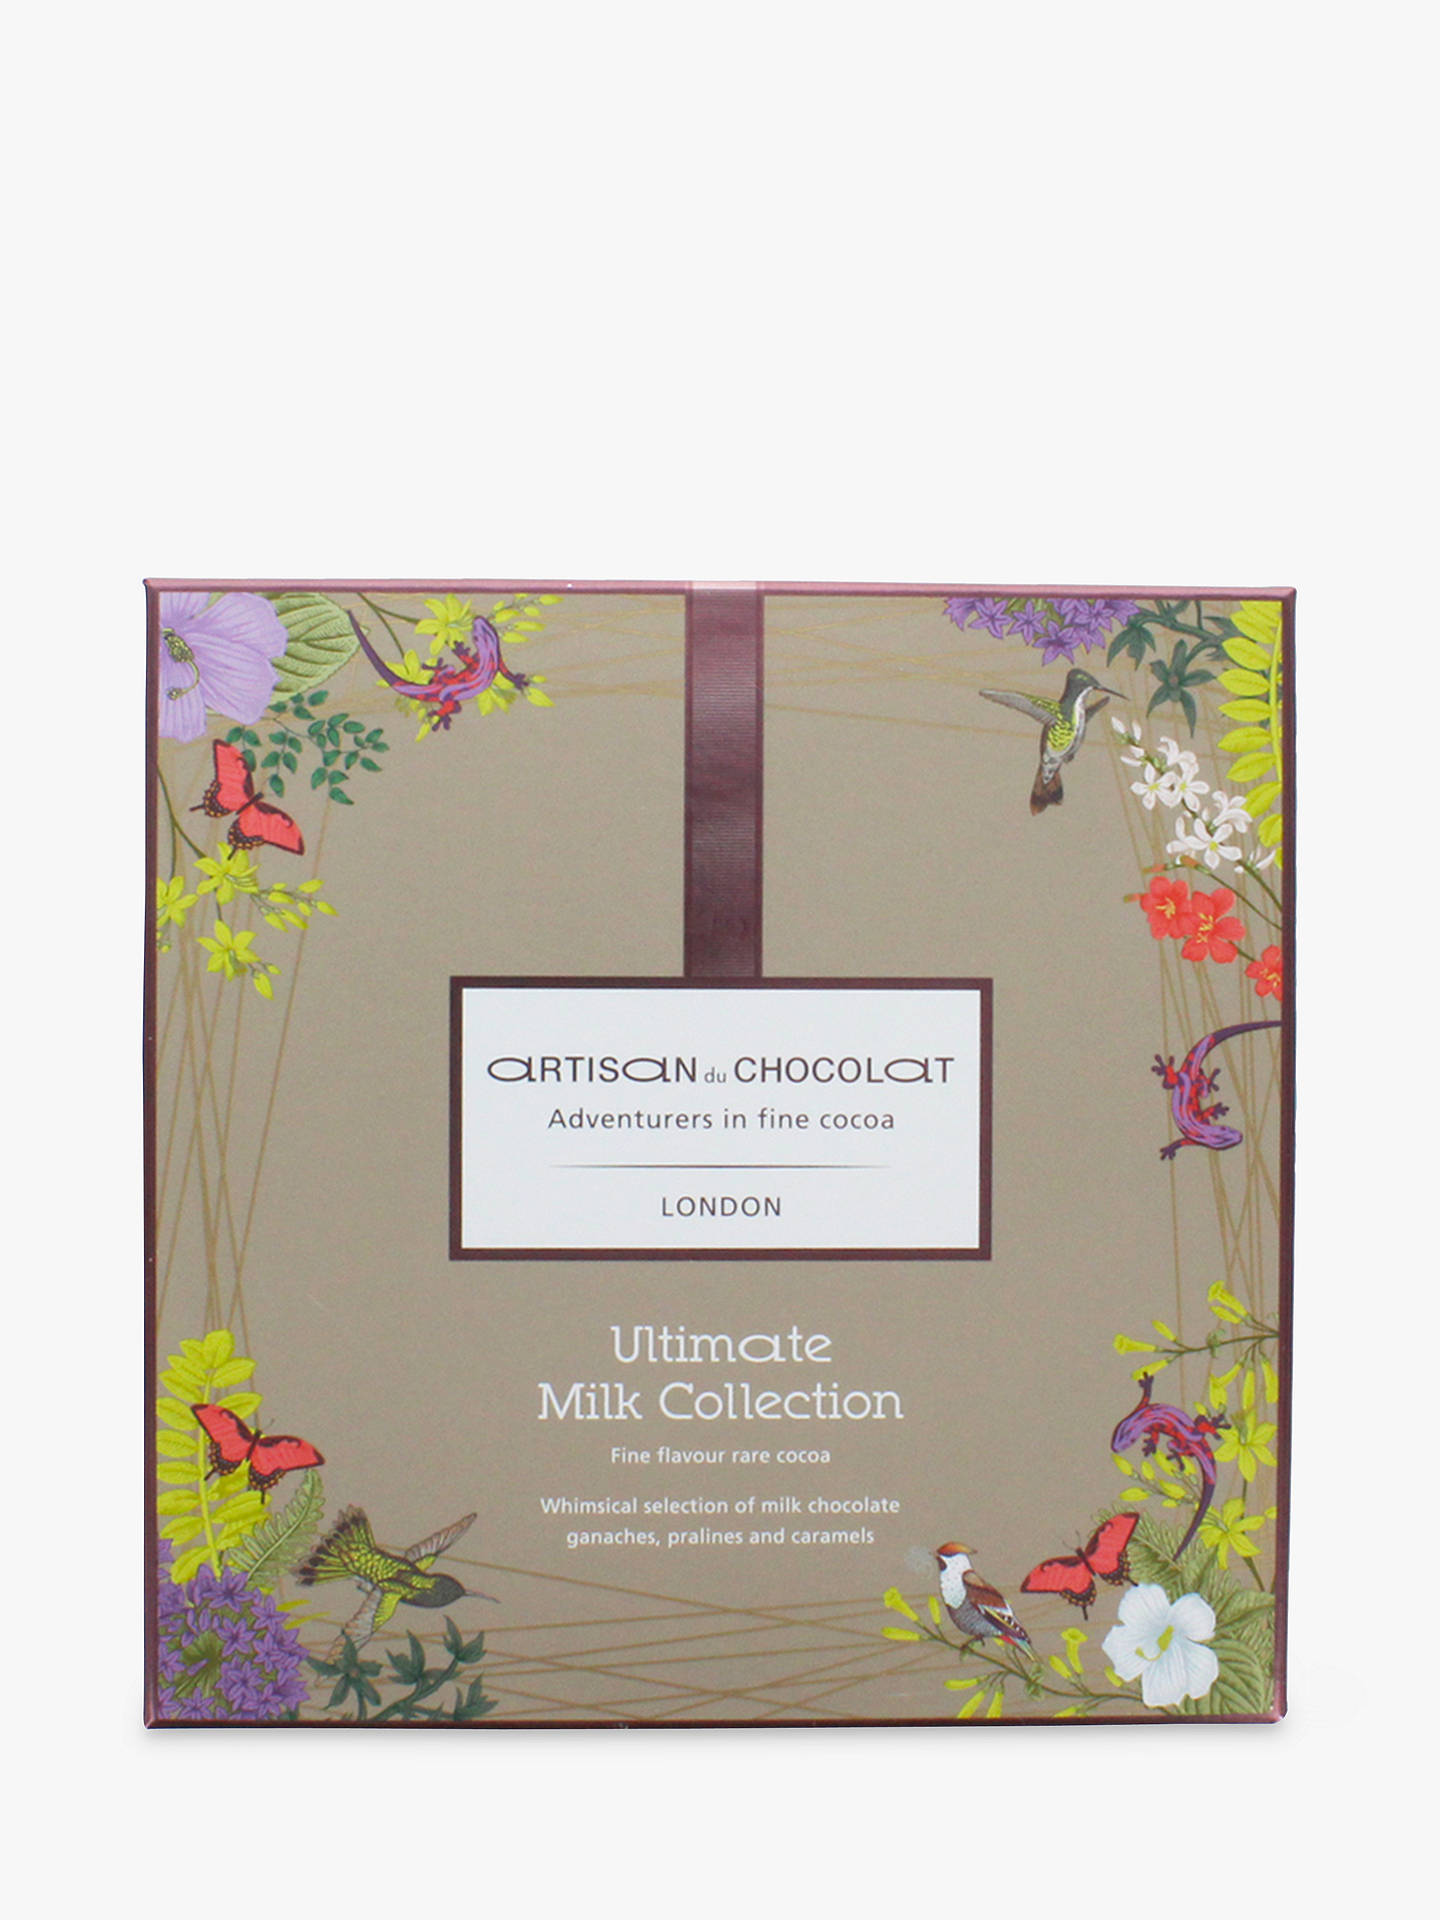 BuyArtisan du Chocolat Assorted Milk Chocolates, 210g Online at johnlewis.com